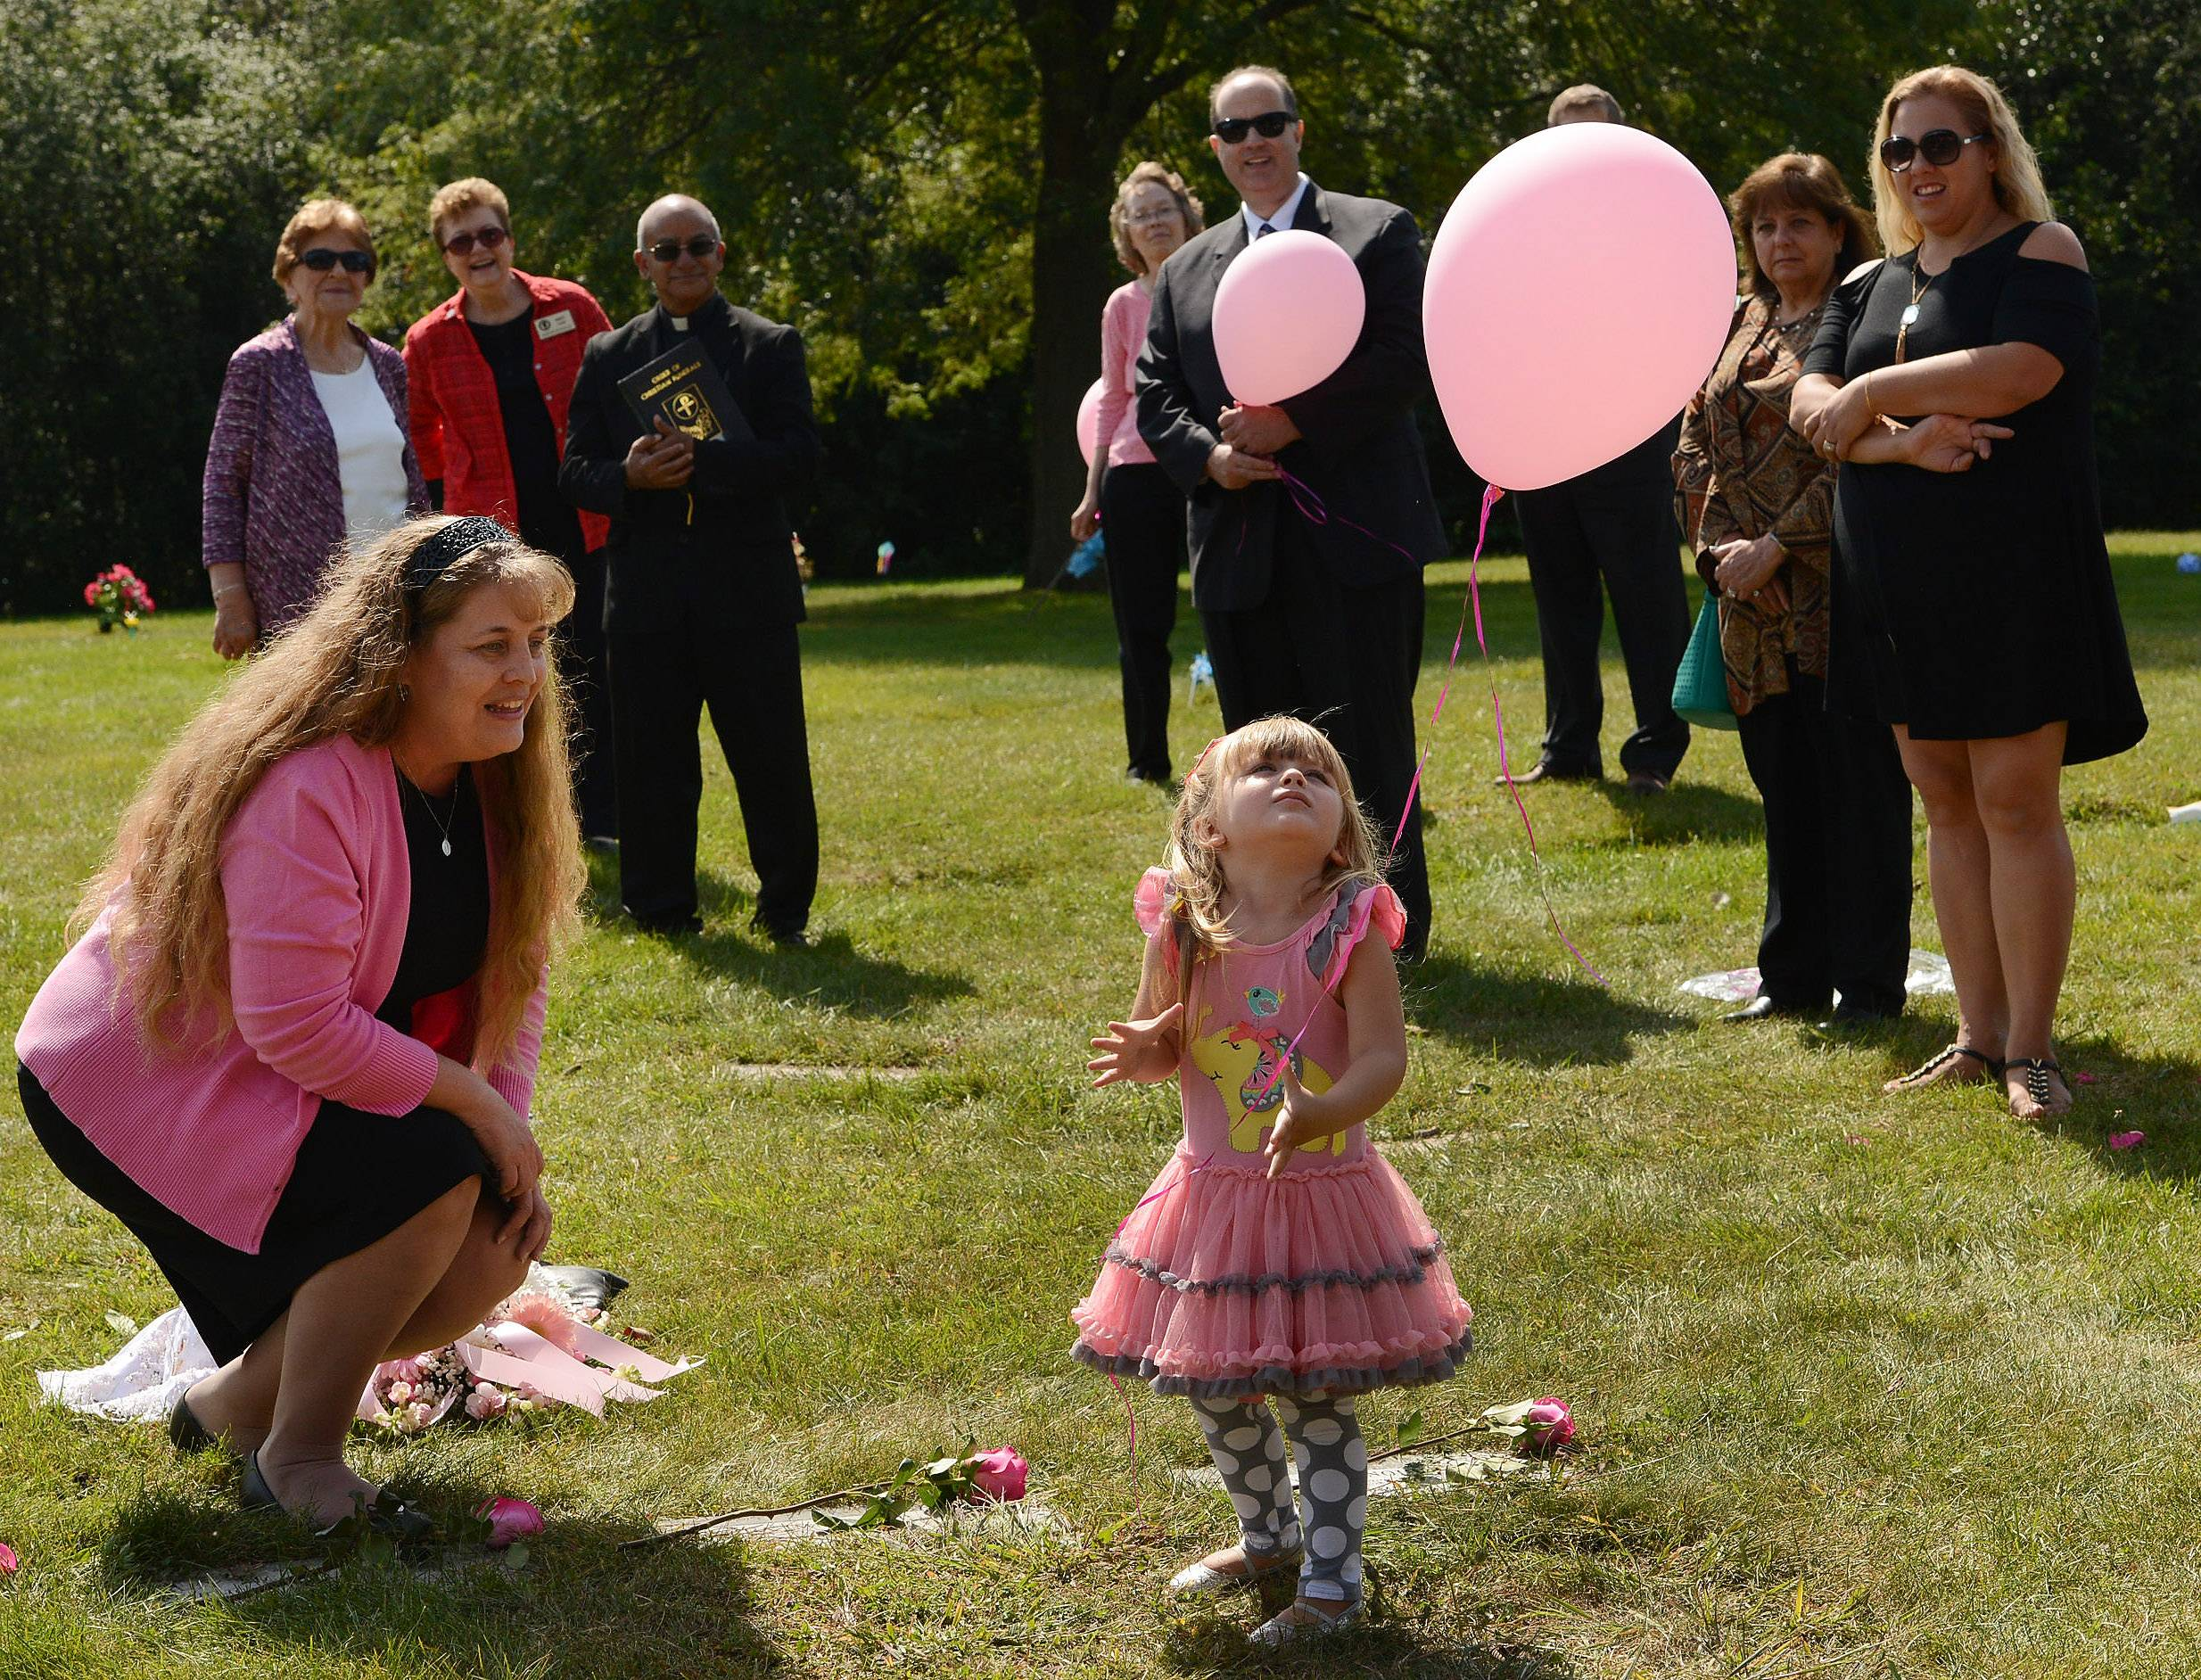 Susan Walker of Rest in His Arms helps 2½-year-old Trinity Haack of Roselle, who was left at a safe haven as a baby and has since been adopted, release a balloon at the gravesite of babies Mariam Jane Uddin and Ariyah Mikayla Hoover at All Saints Cemetery in Des Plaines.